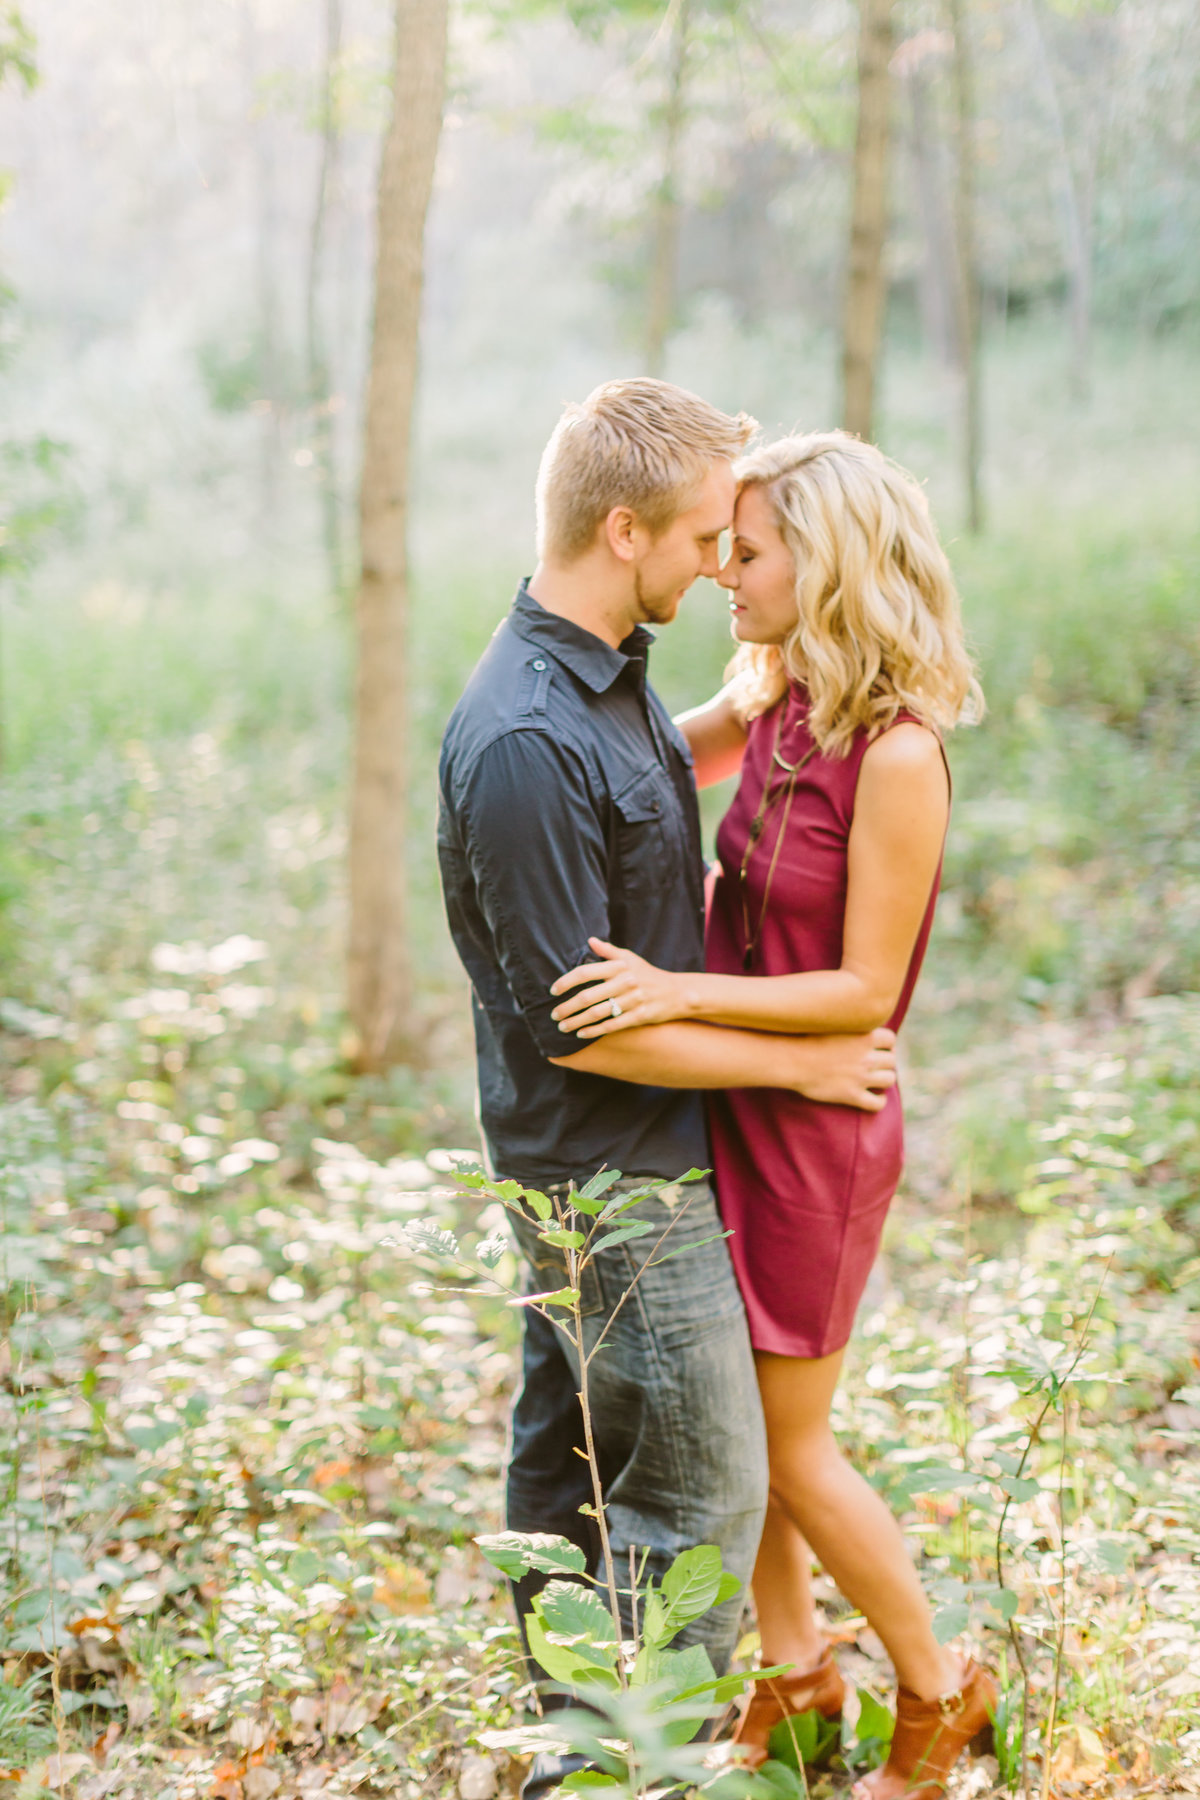 shaunae-teske-photography-engagements-23